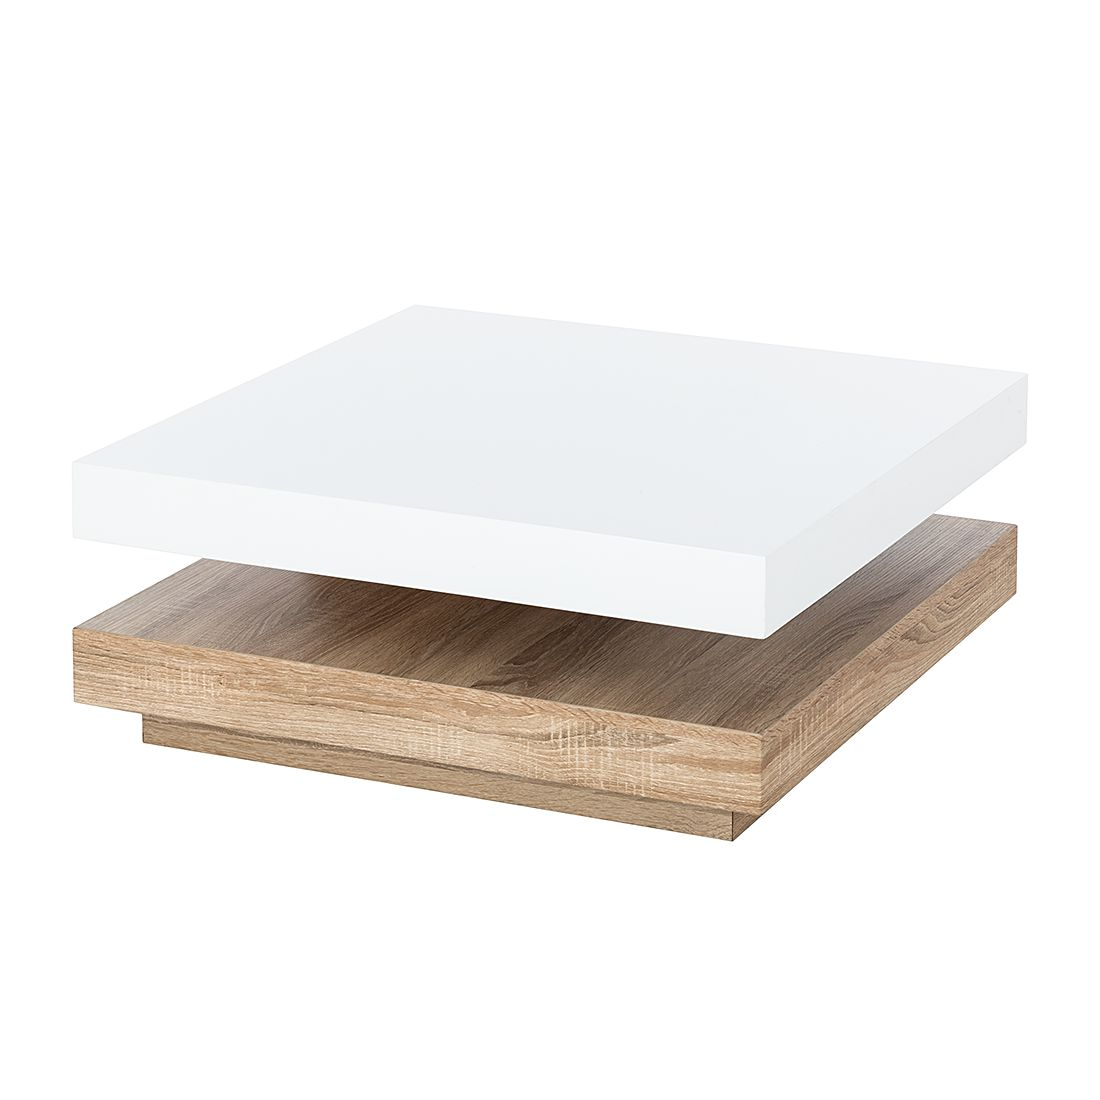 Table basse Emblaze - Blanc brillant / Imitation chêne de Sonoma clair, Fredriks